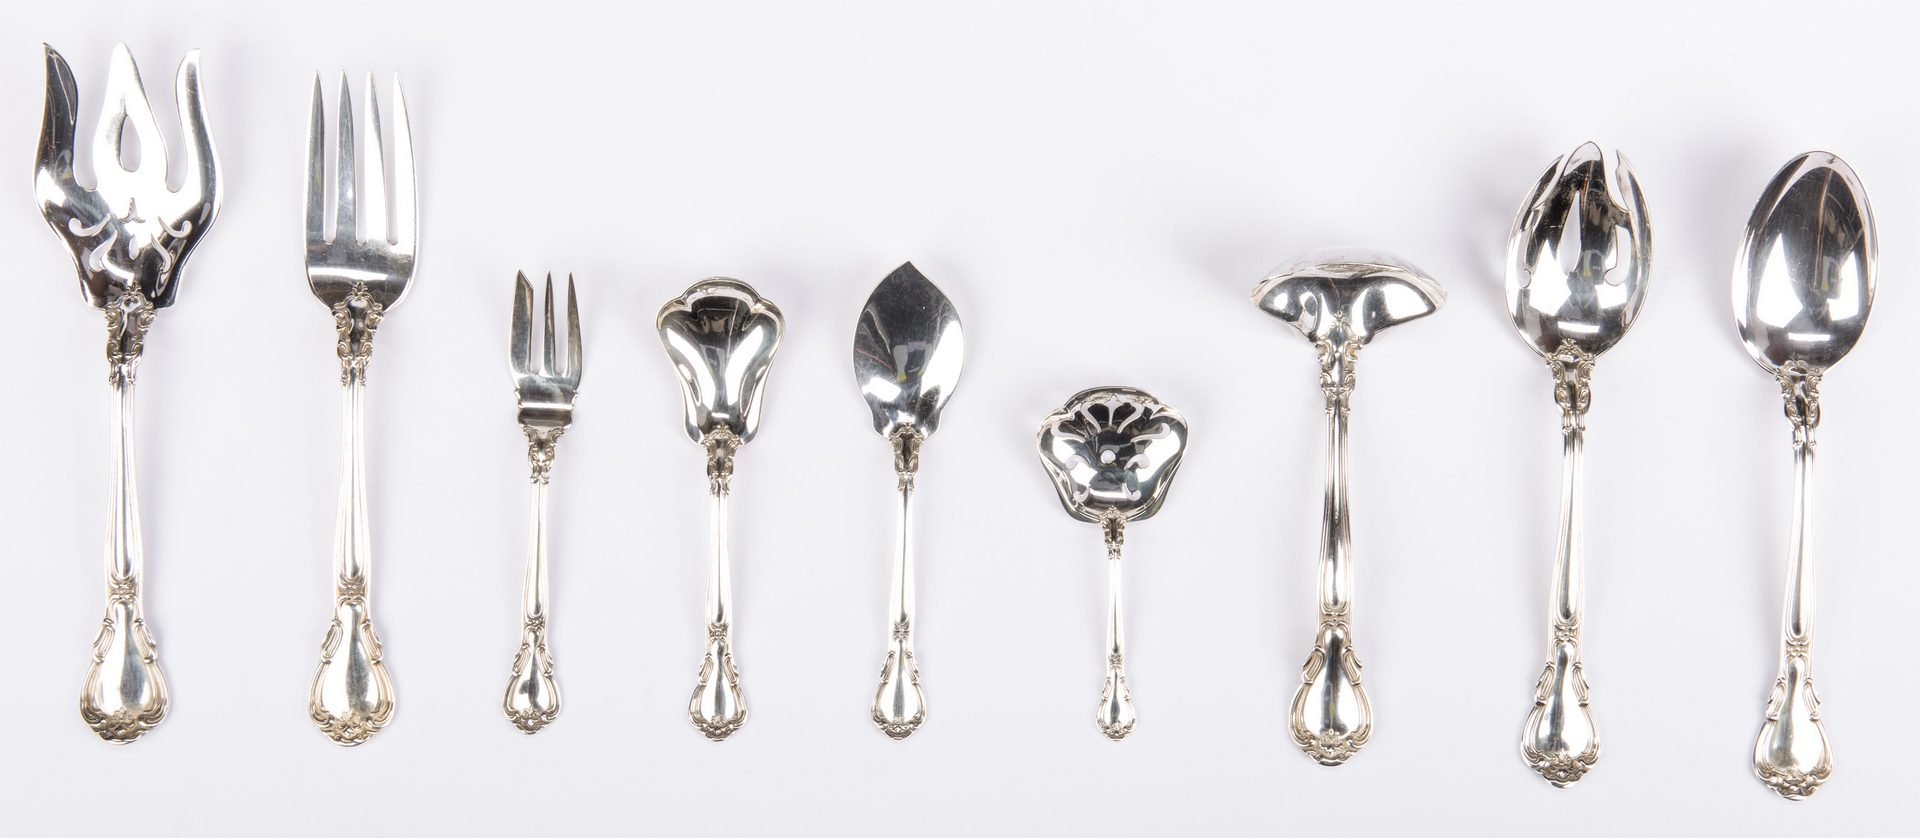 Lot 73: Gorham Chantilly Flatware Set, 93 pcs